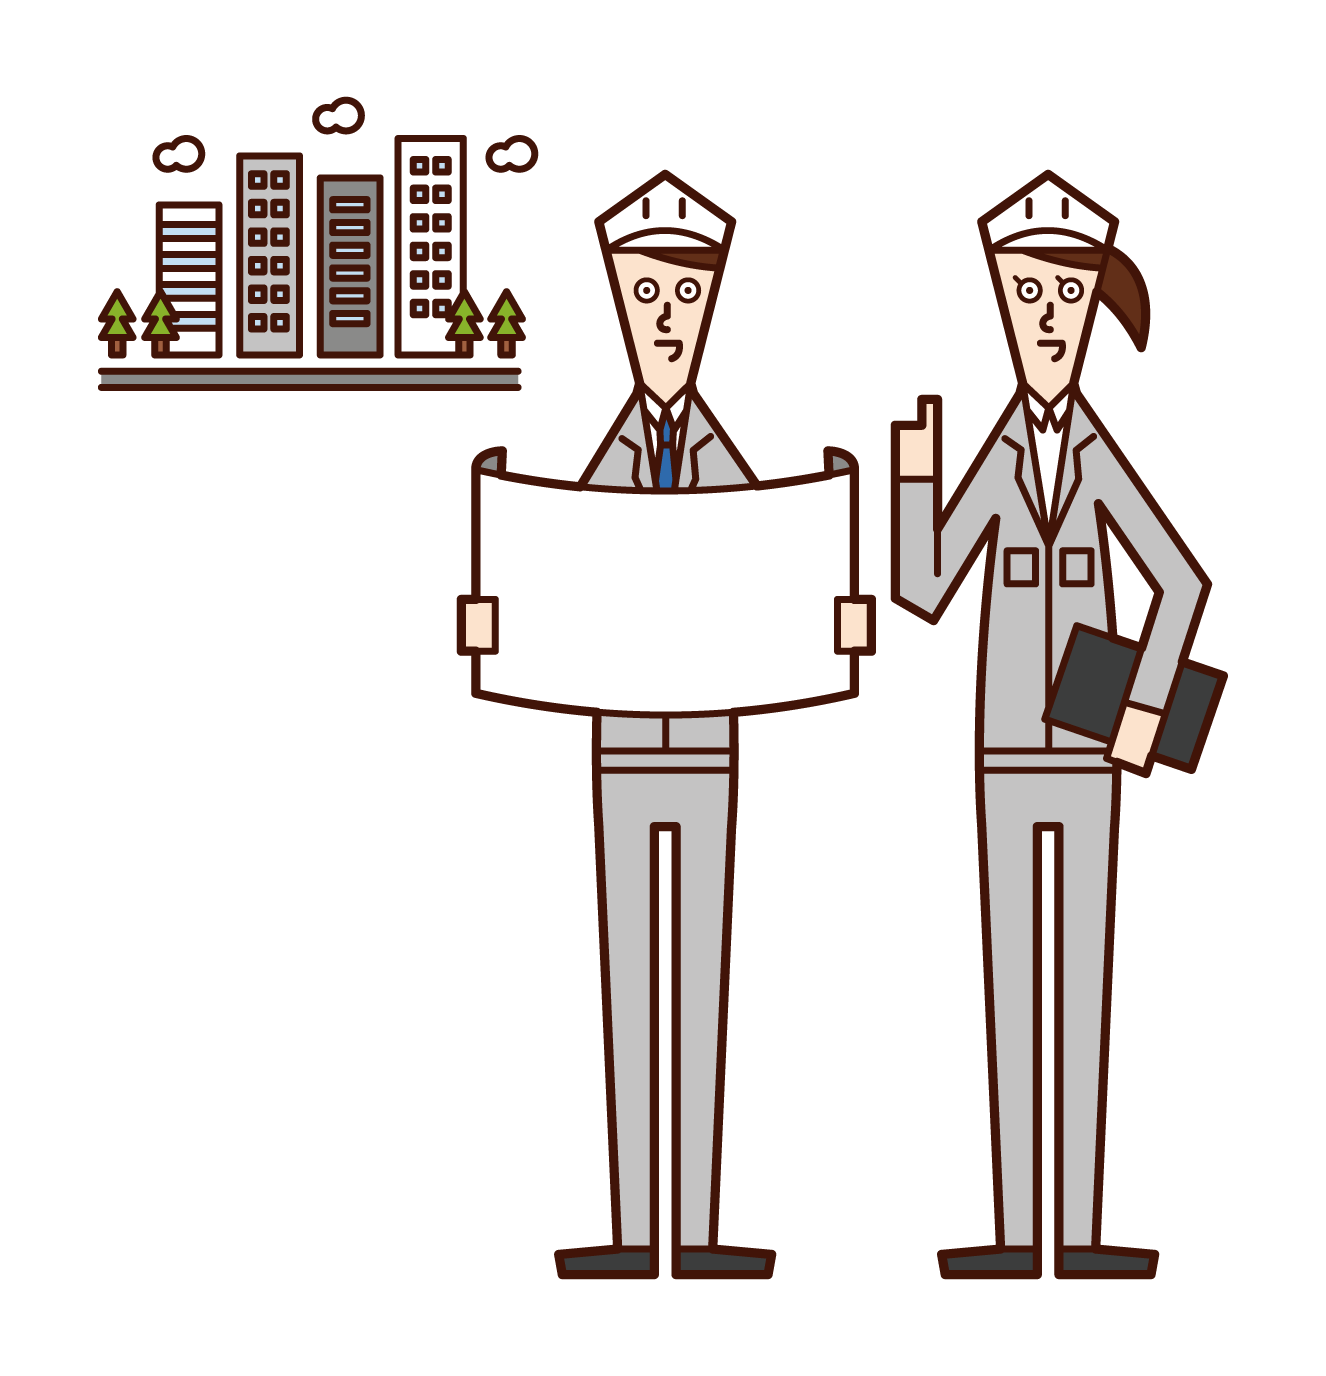 Illustration of a person developing an urban area